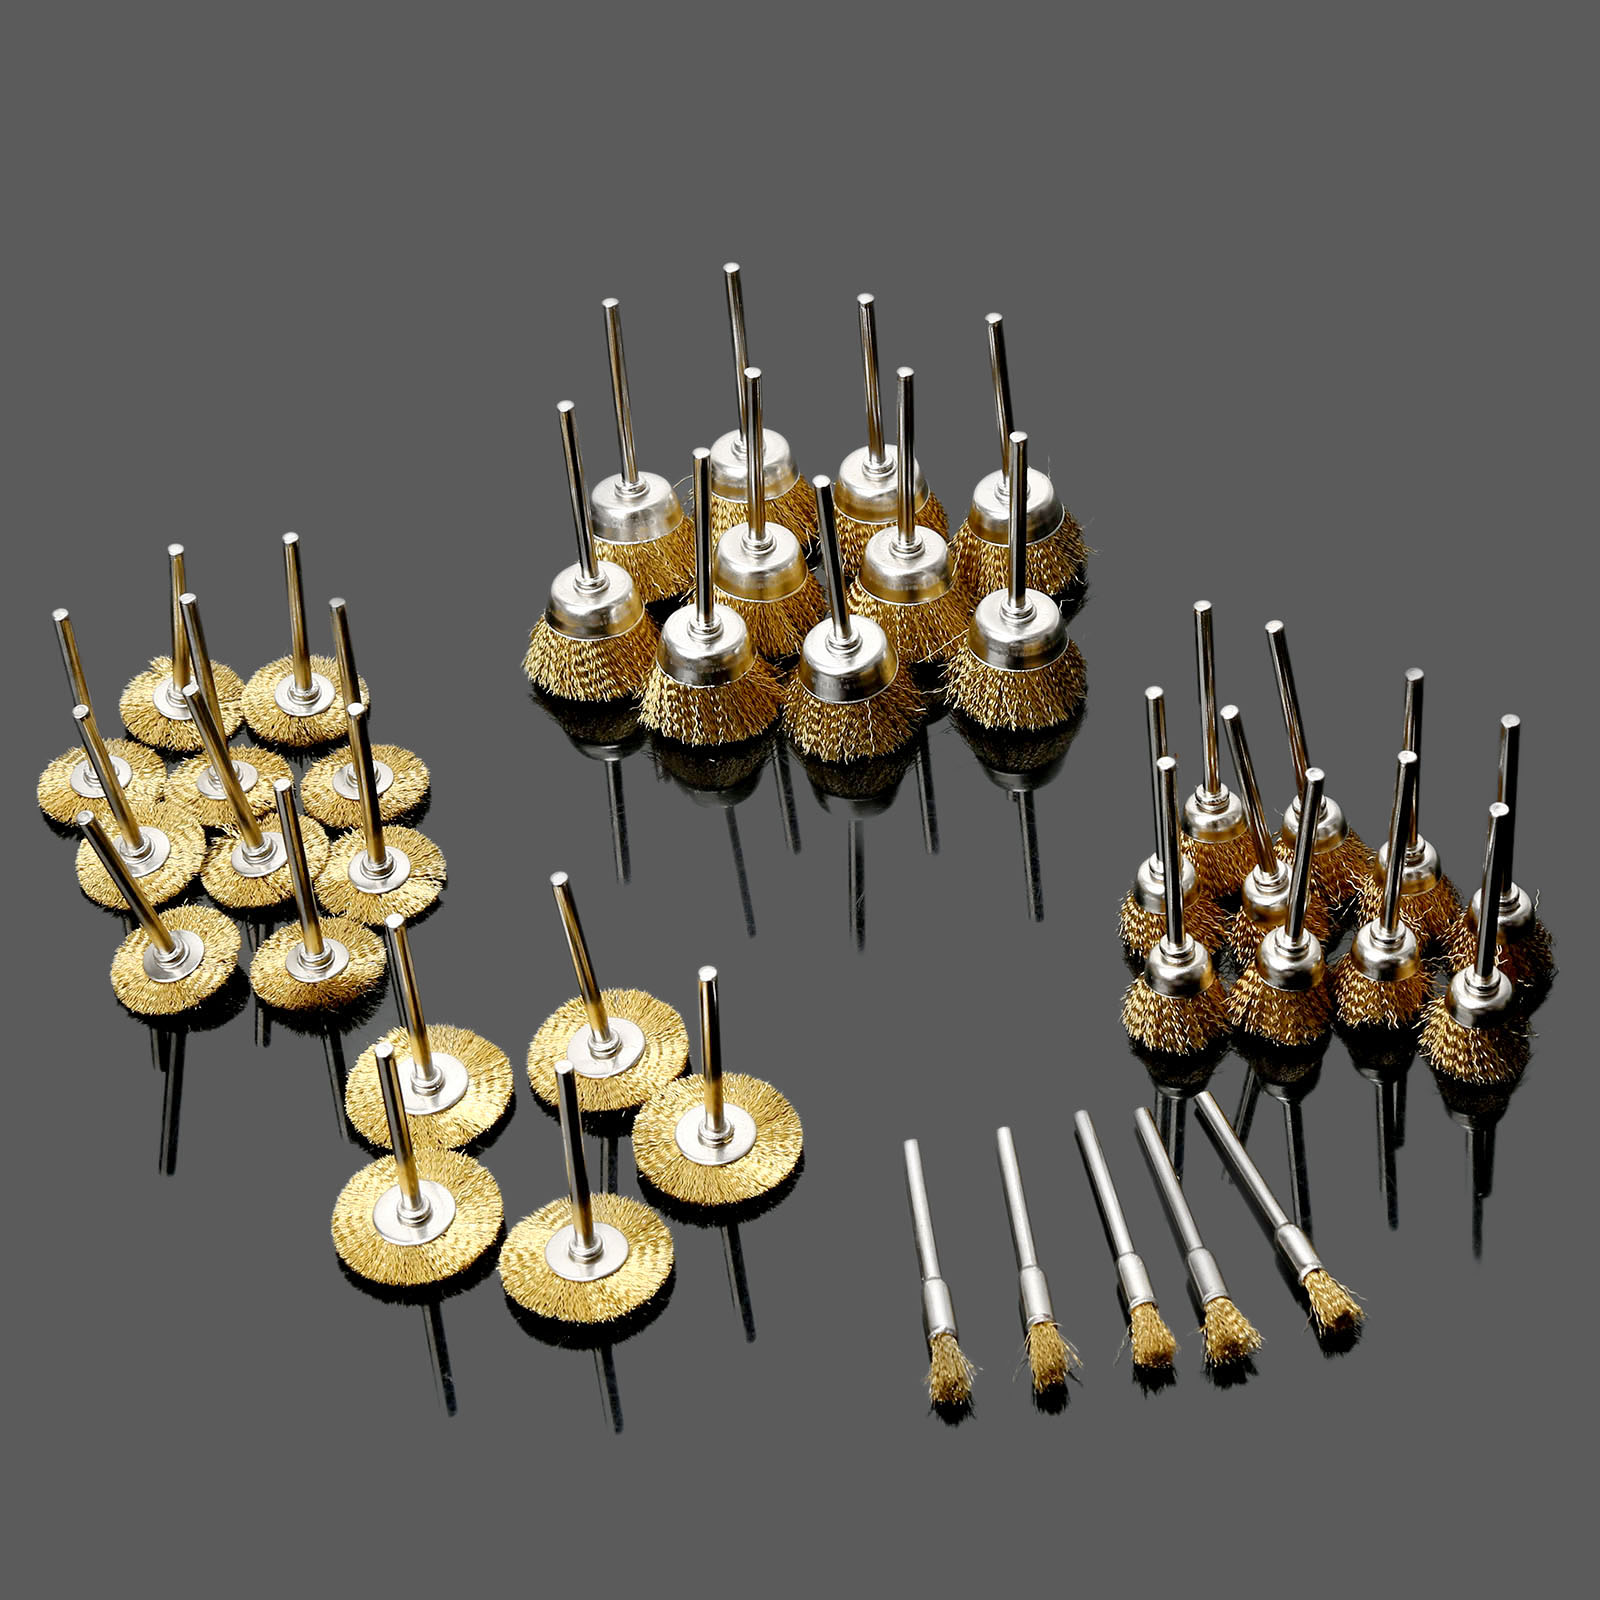 40Pcs Dremel Accessories Brass Wire Wheel Brushes Rotary Tools Burr Abrasive Tools Deburring for Mini Drill Polishing Grinding 16pc brass bristle wheel brushes for dremel accessories for rotary tools